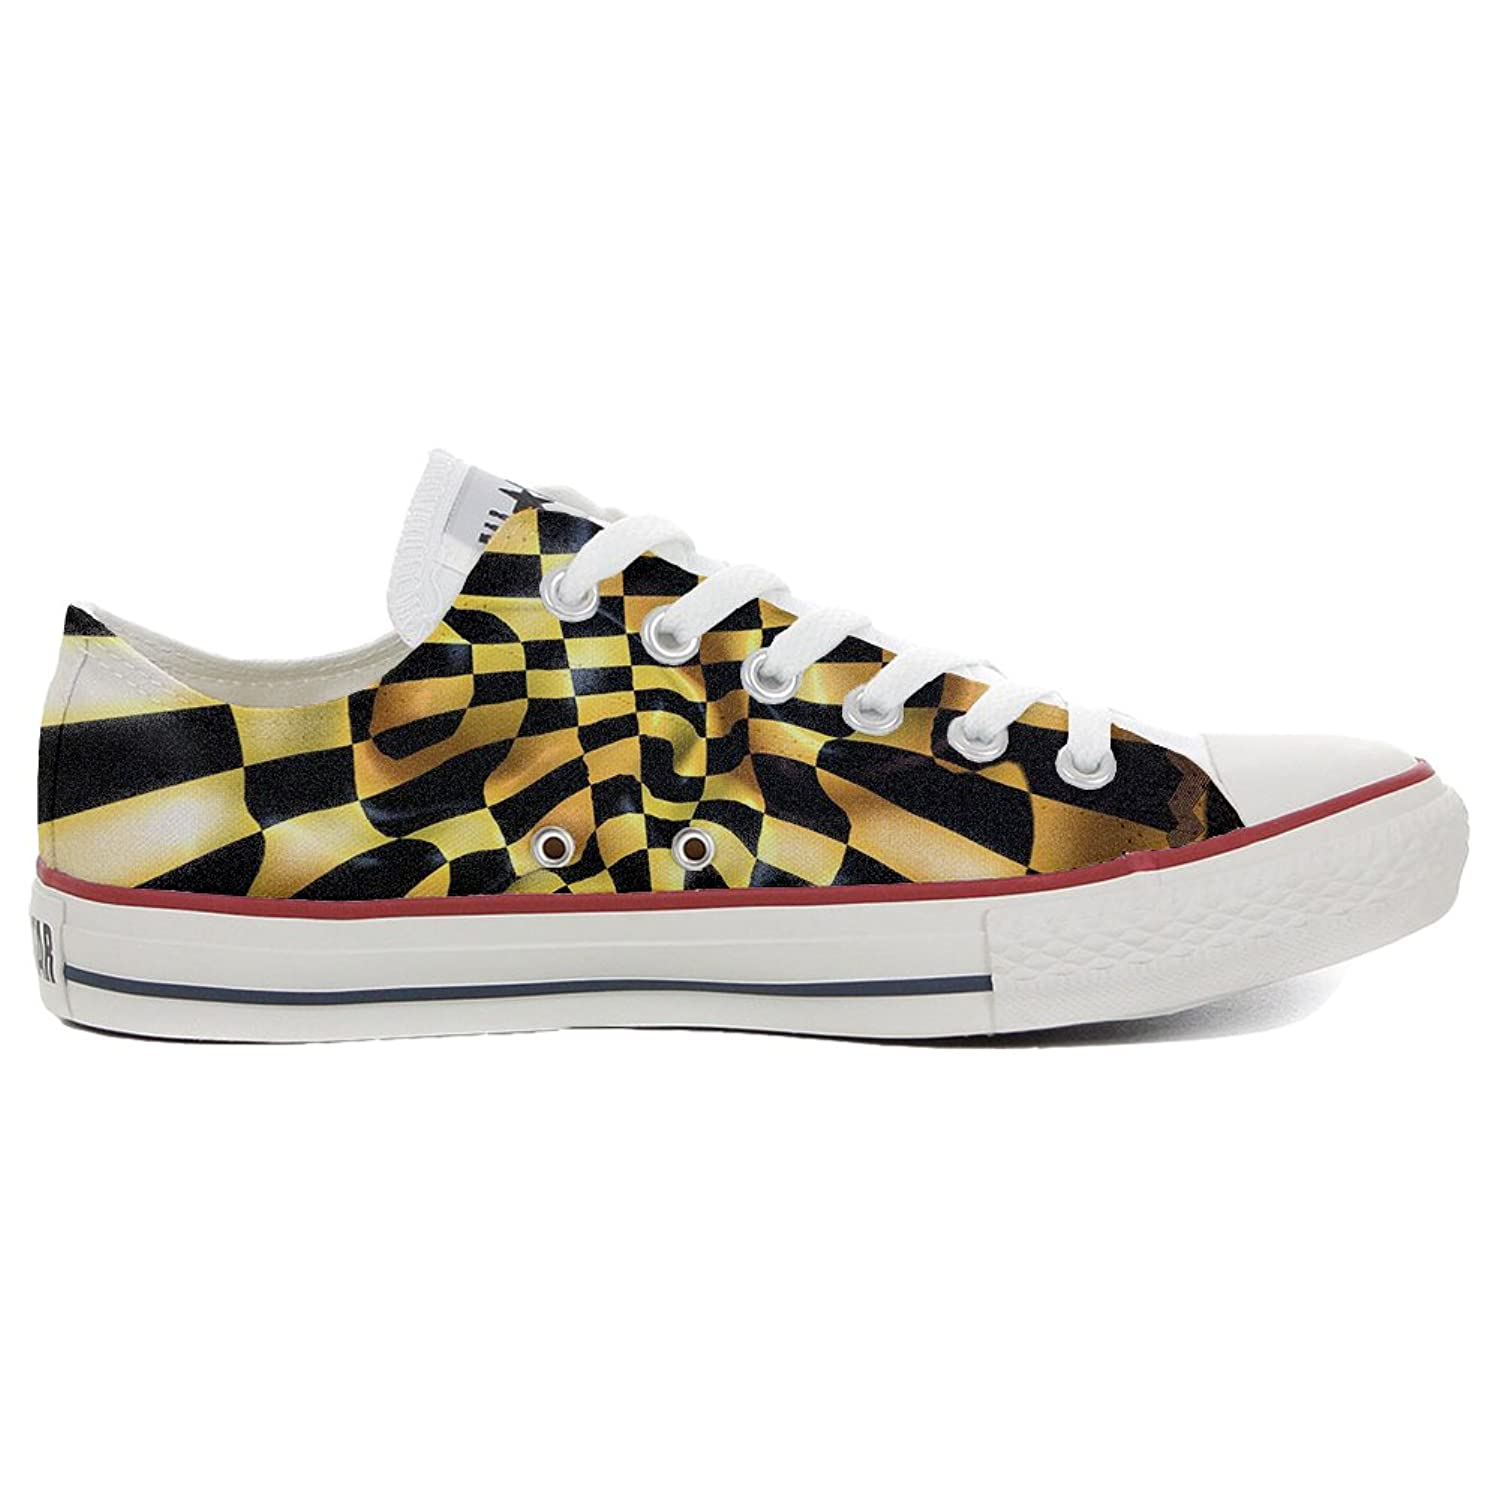 Converse All Star Low Customized personalisierte Schuhe (Handwerk Schuhe) Slim Chess fantasy